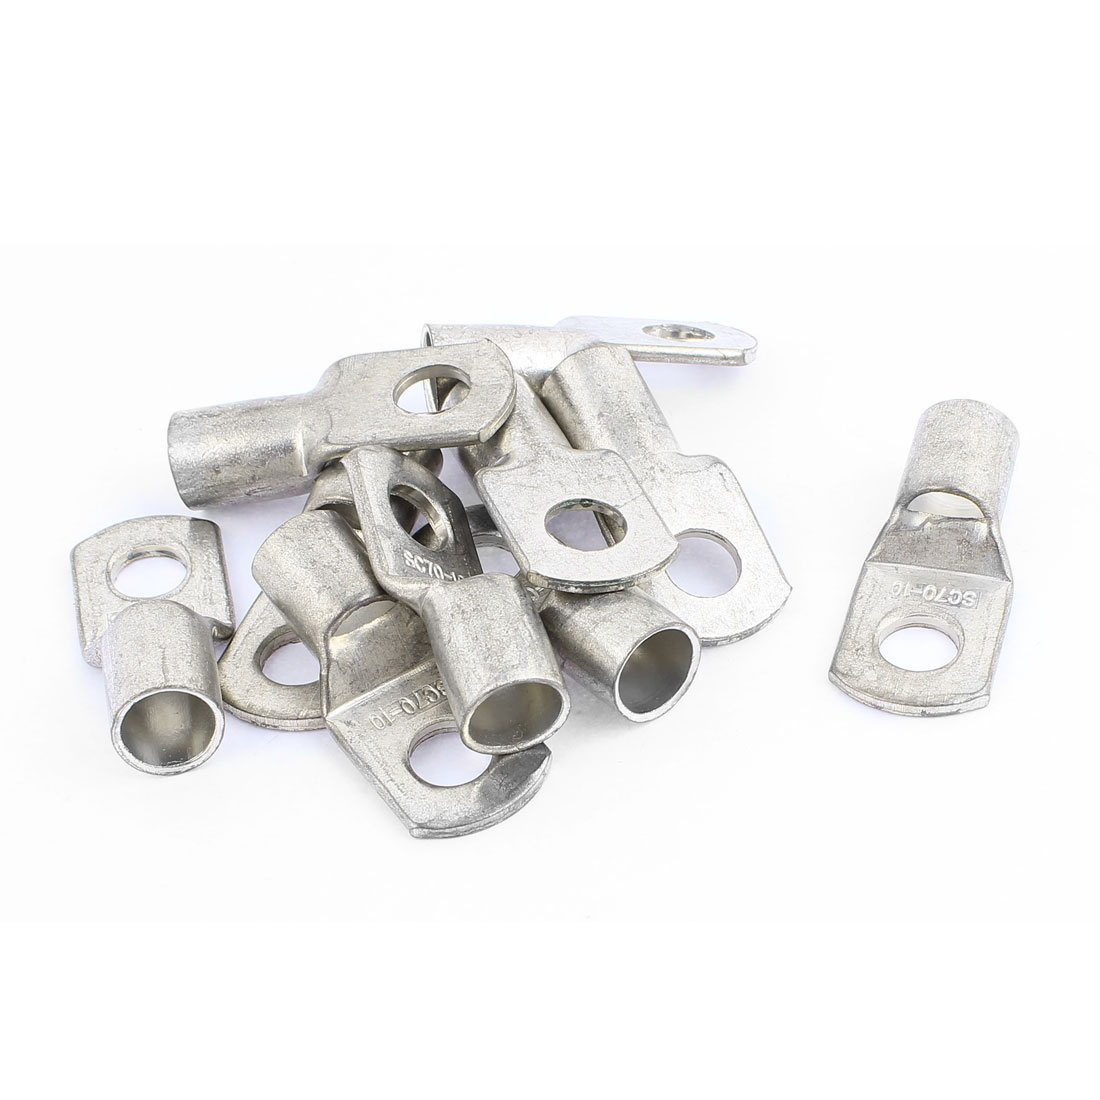 10x SC70-10 10mm Dia Bolt Hole Metal Cable Lug Connector Terminal for 70mm2 Wire